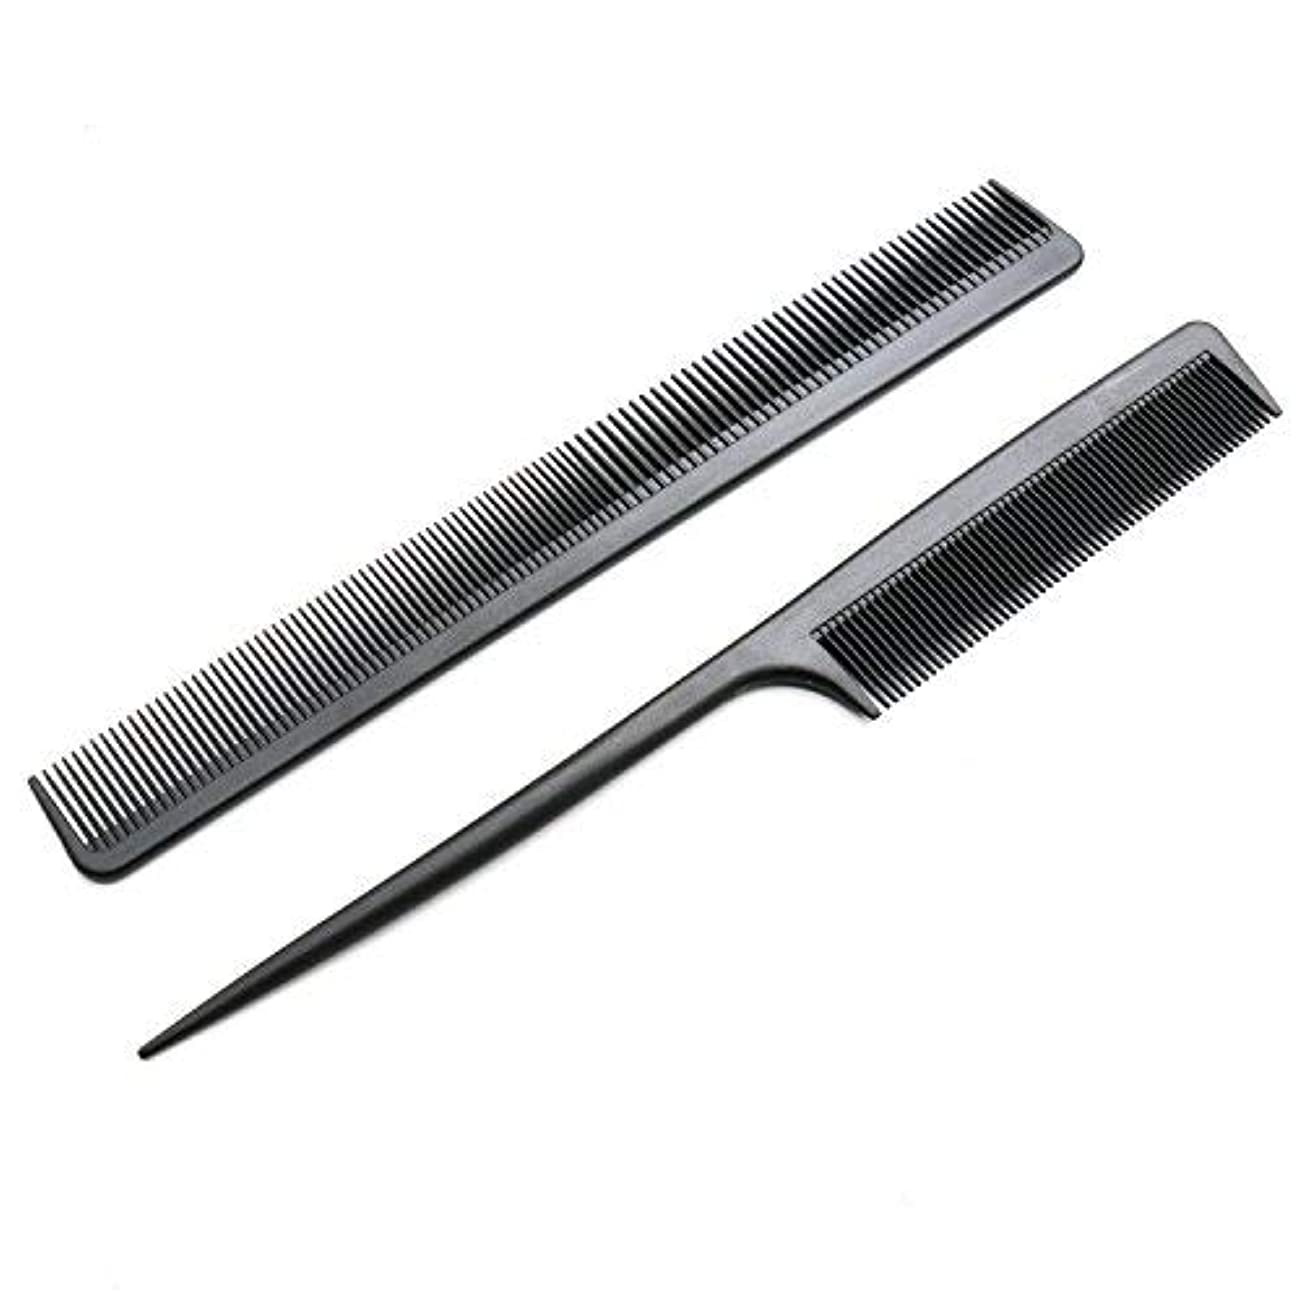 祈りタンクバタフライ2 Pack Carbon Fiber Anti Static Chemical And Heat Resistant Tail Comb For All Hair Types,Black [並行輸入品]